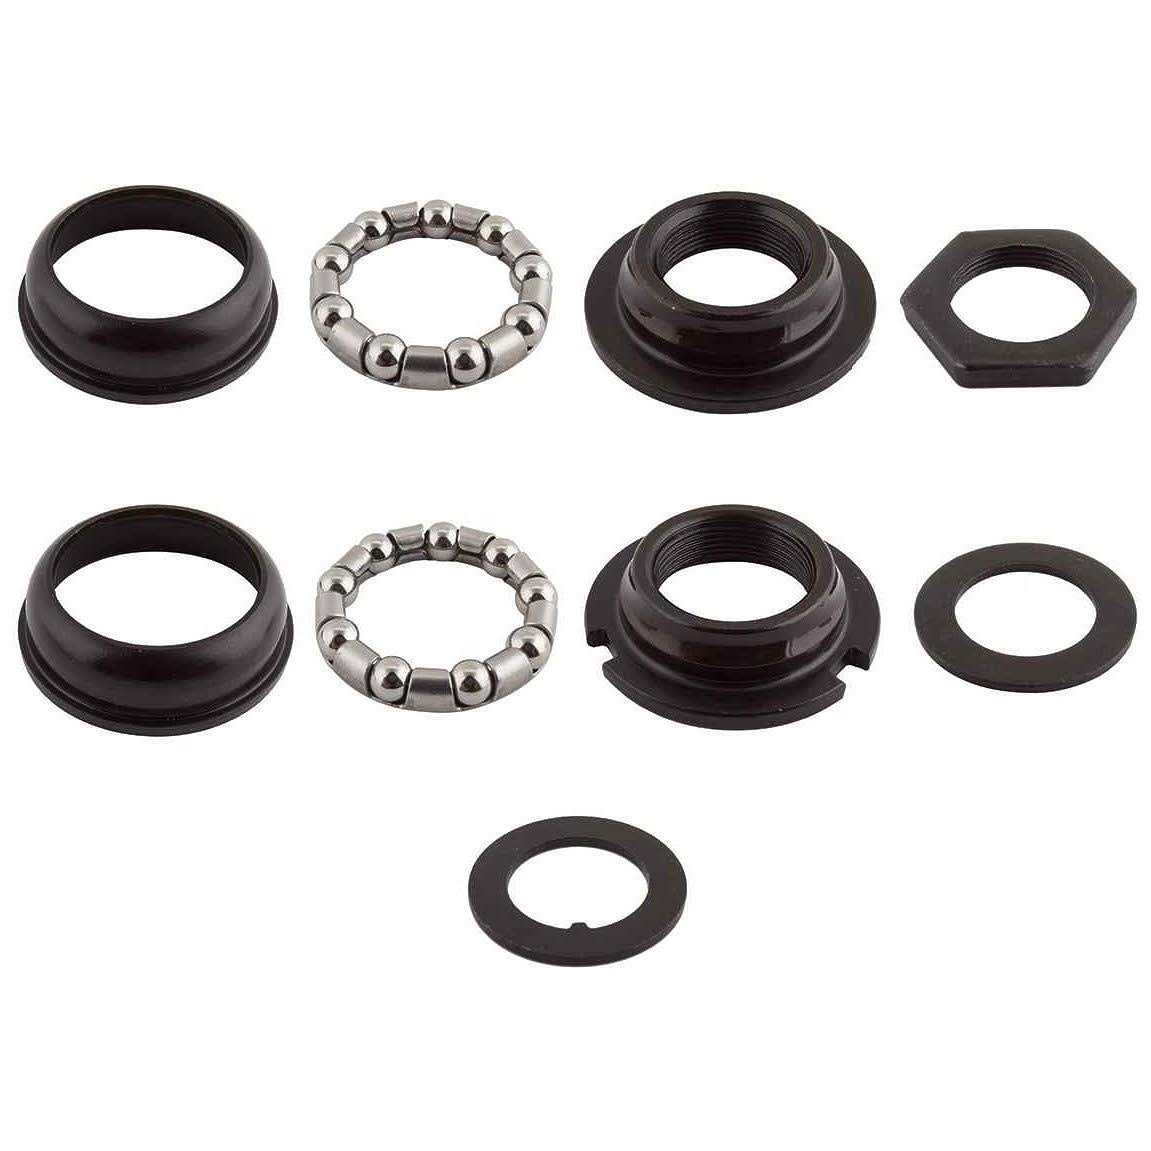 Sunlite Bottom Bracket Set - Black, 24 Tpi, 68mm